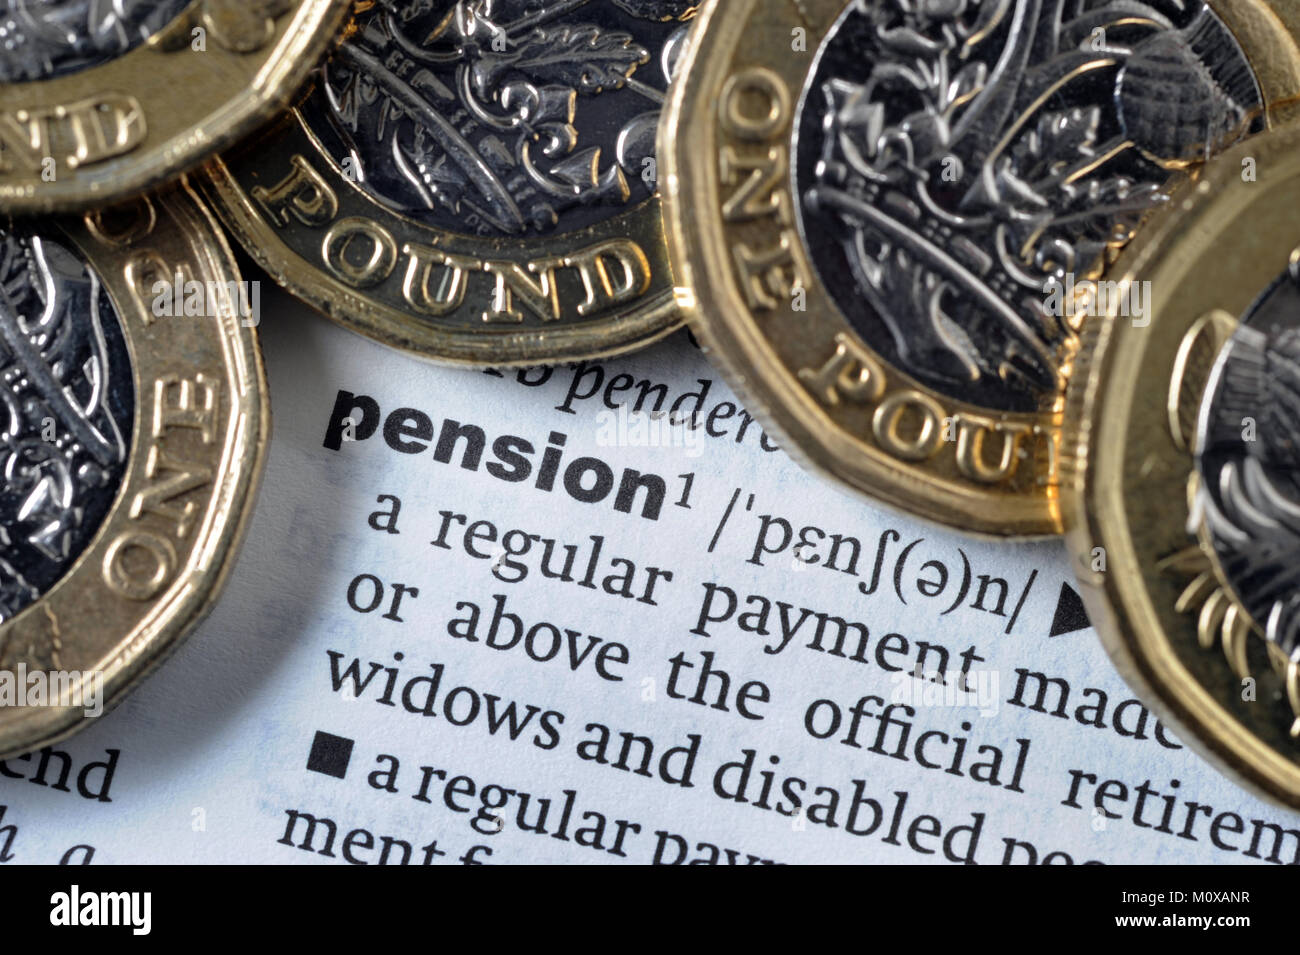 DICTIONARY SPELLING OF WORD 'PENSION' WITH ONE POUND COINS RE RETIREMENT PENSIONS INCOMES SAVINGS OLD AGE - Stock Image